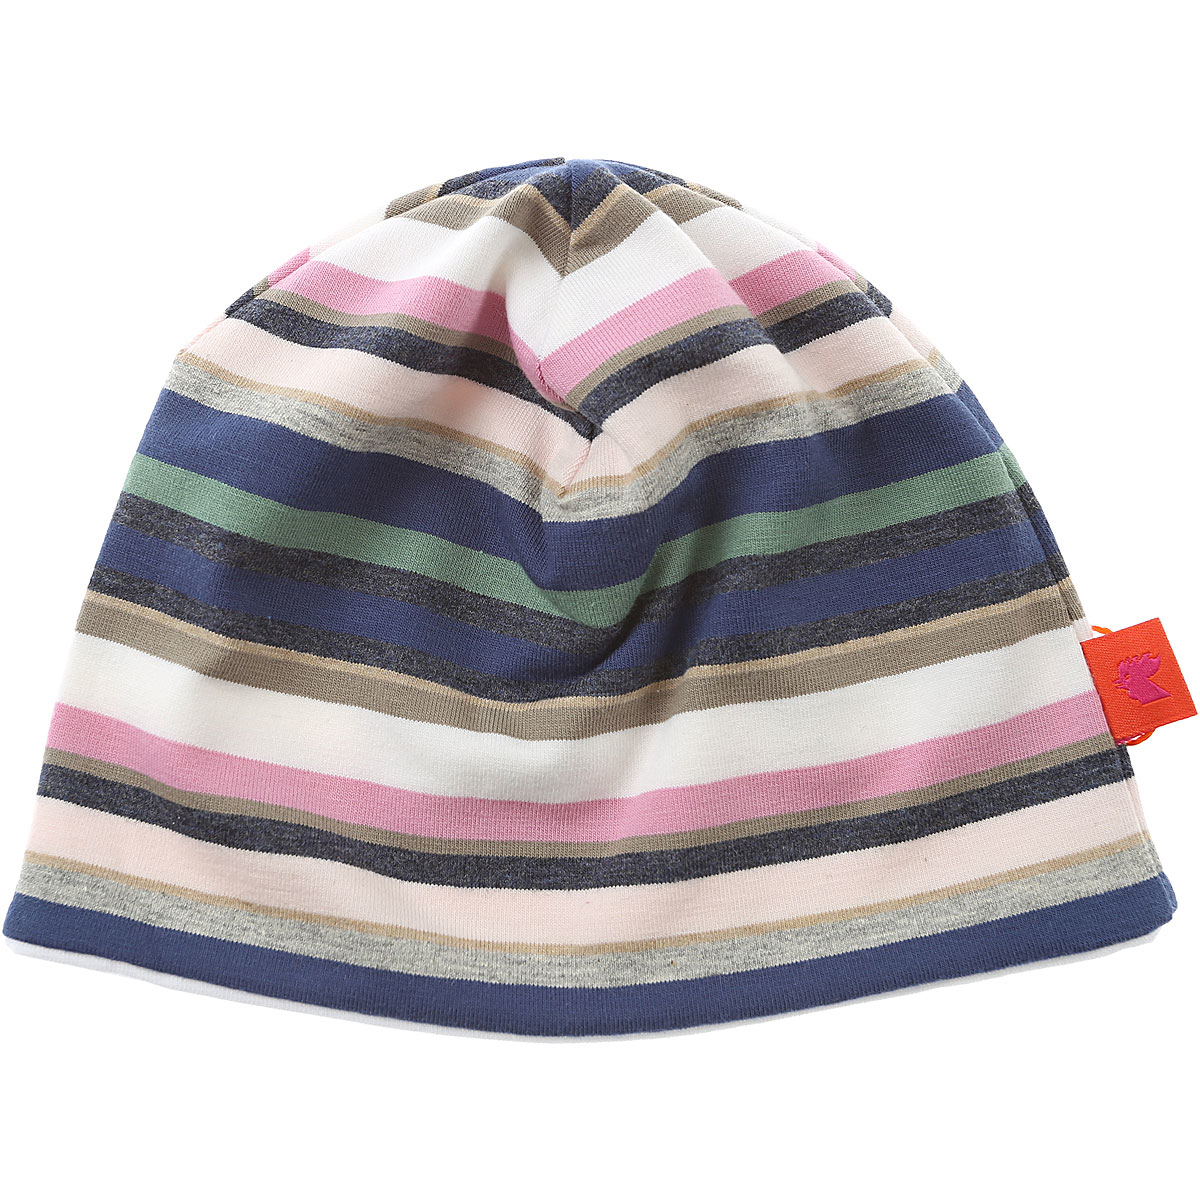 Gallo Baby Hats for Girls On Sale in Outlet Pink DK - GOOFASH - Womens HATS